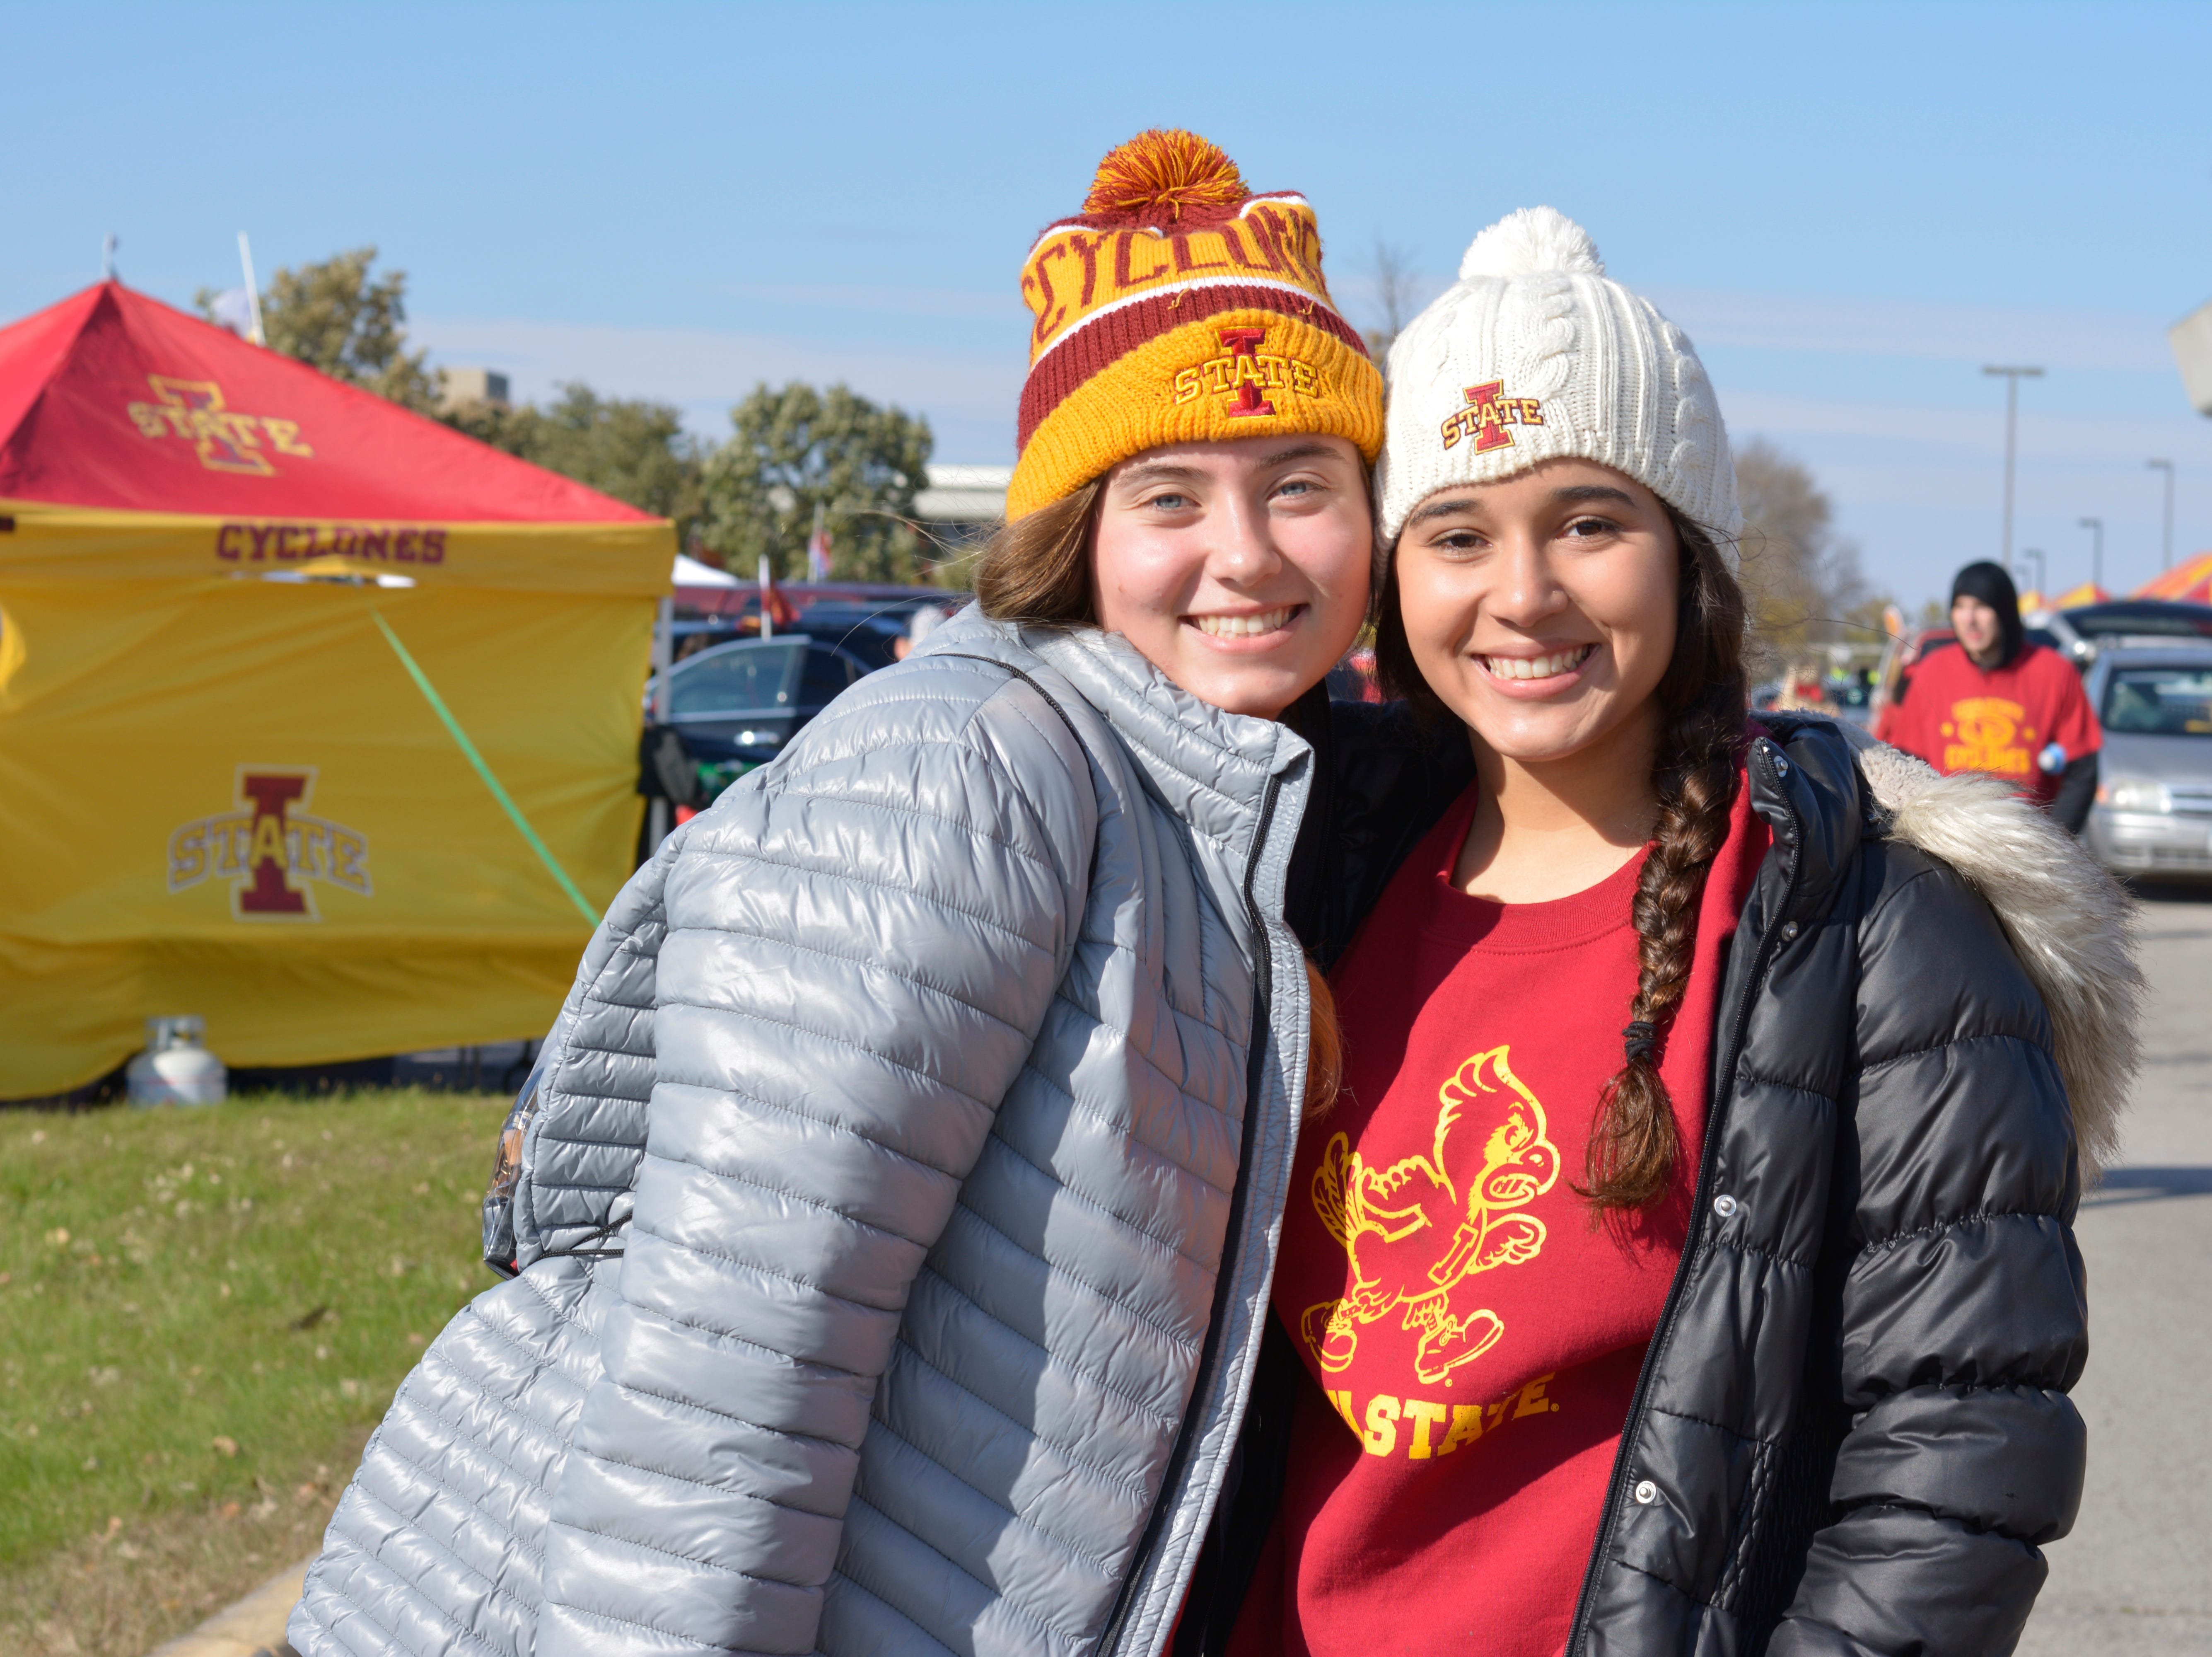 Ajla Ikeljic (left) and Grace Pearson (right) before the Iowa State University football game against West Virginia in Ames on Oct. 13.